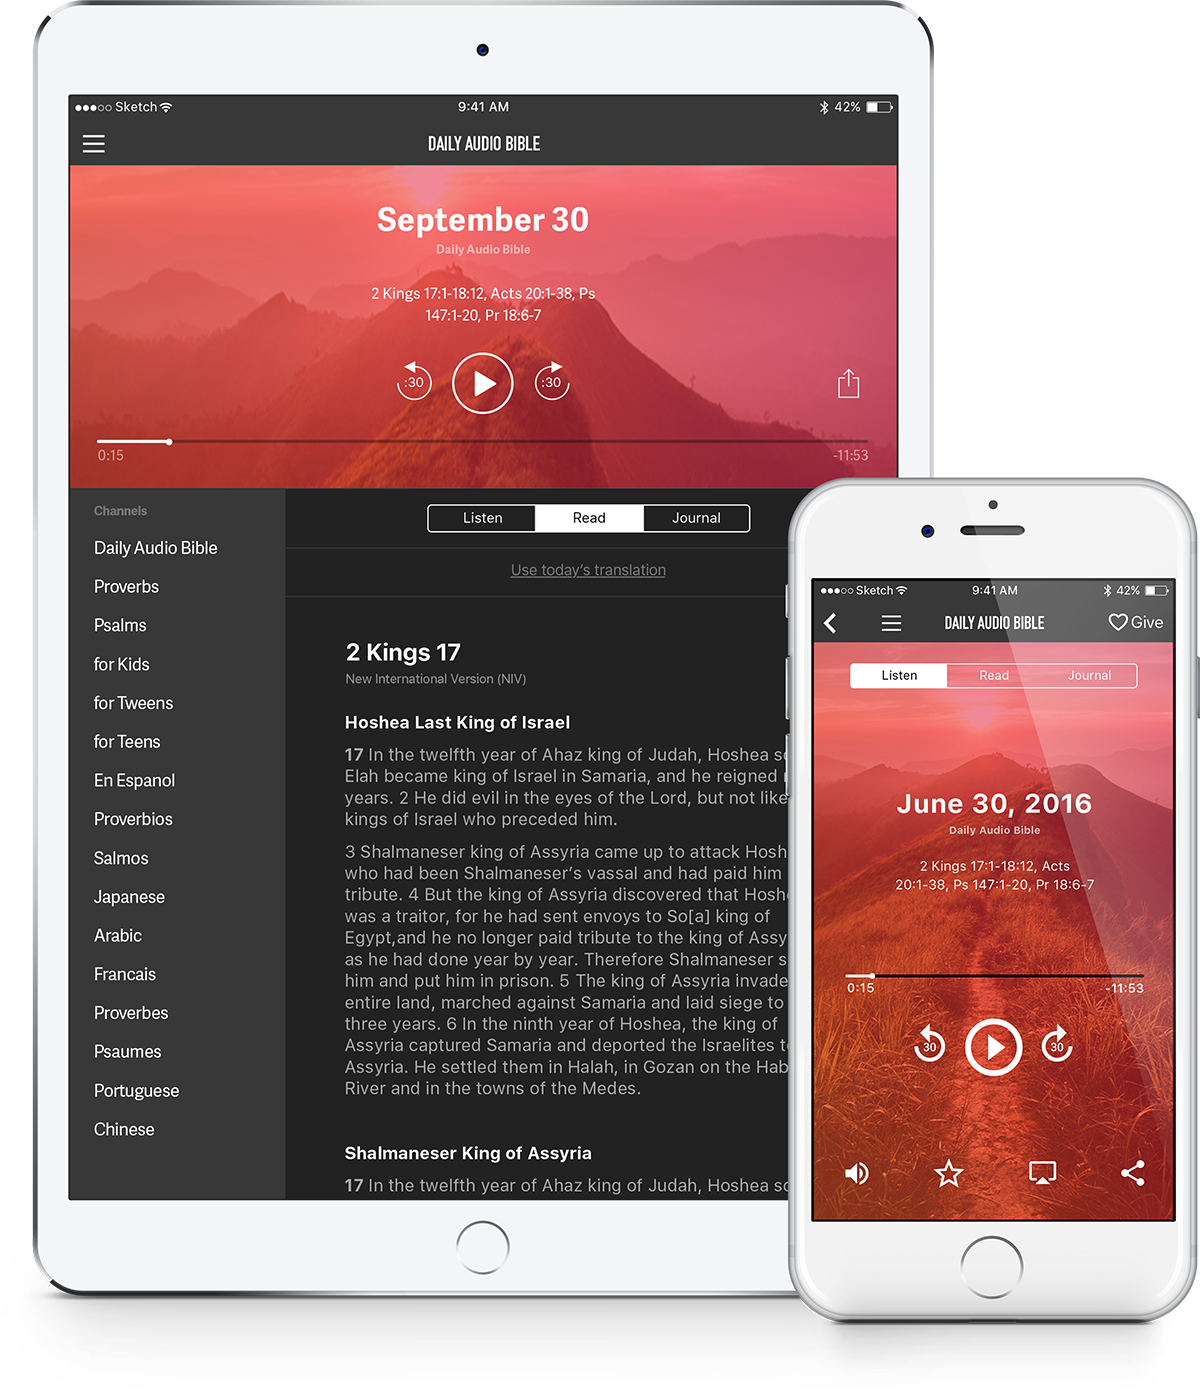 The Daily Audio Bible Mobile App